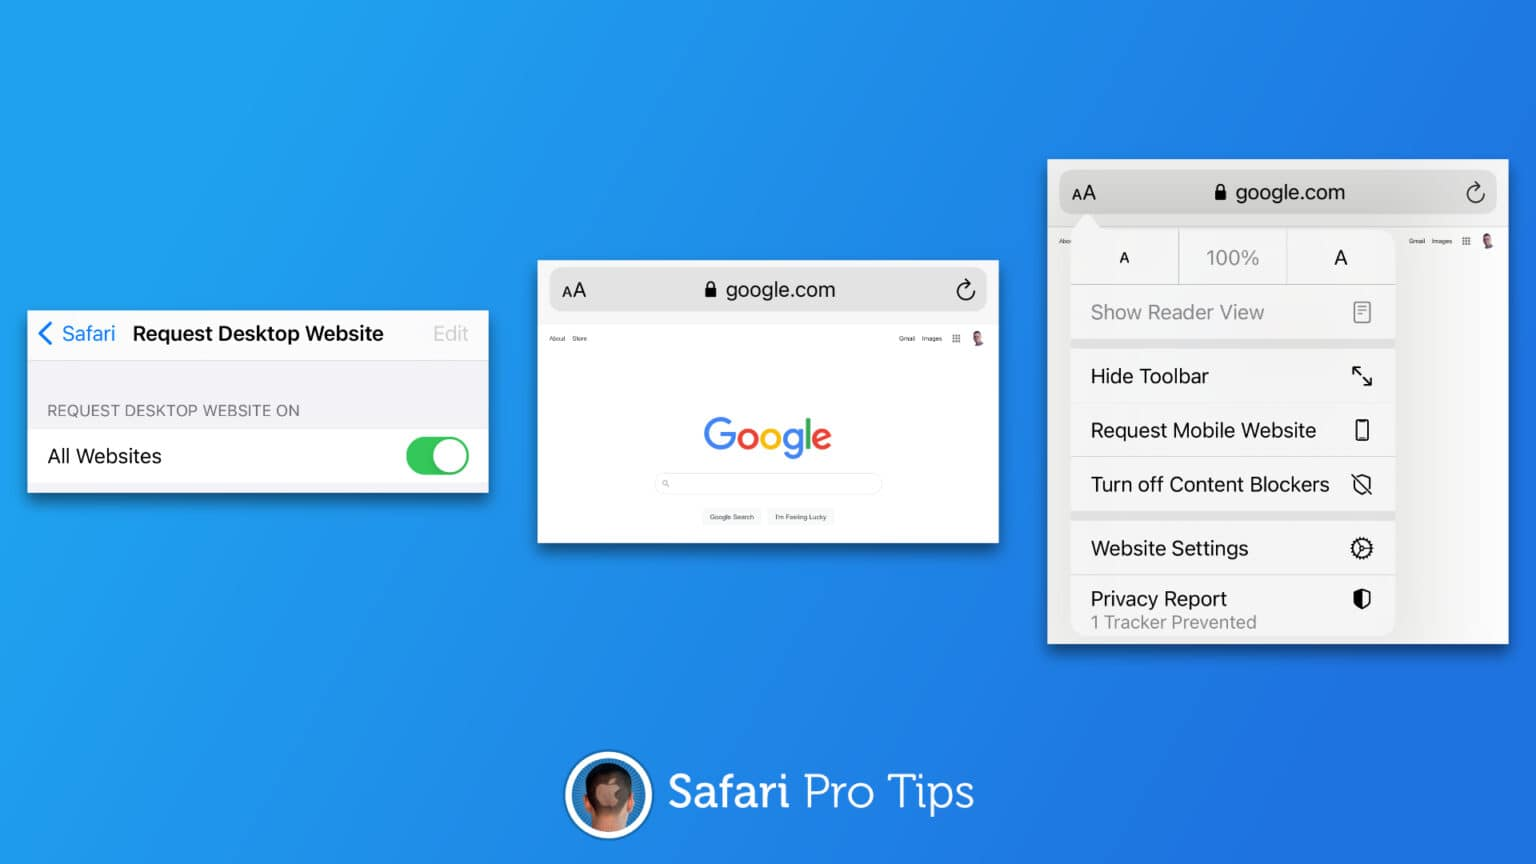 How to fetch desktop websites in Safari